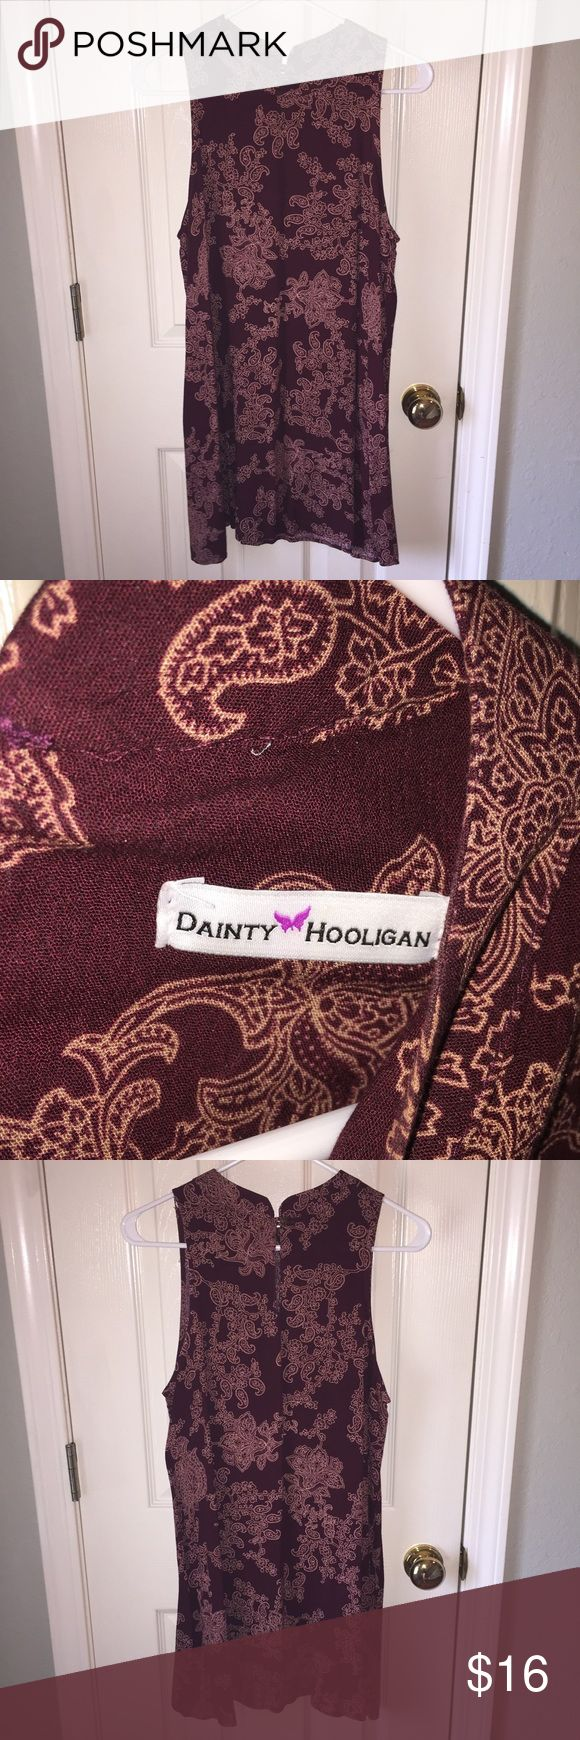 DAINTY HOOLIGAN maroon dress Floral design. High neckline. Breezy!!! I wore this dress to a country concert and it was perfect! Love it. Free People Dresses Mini